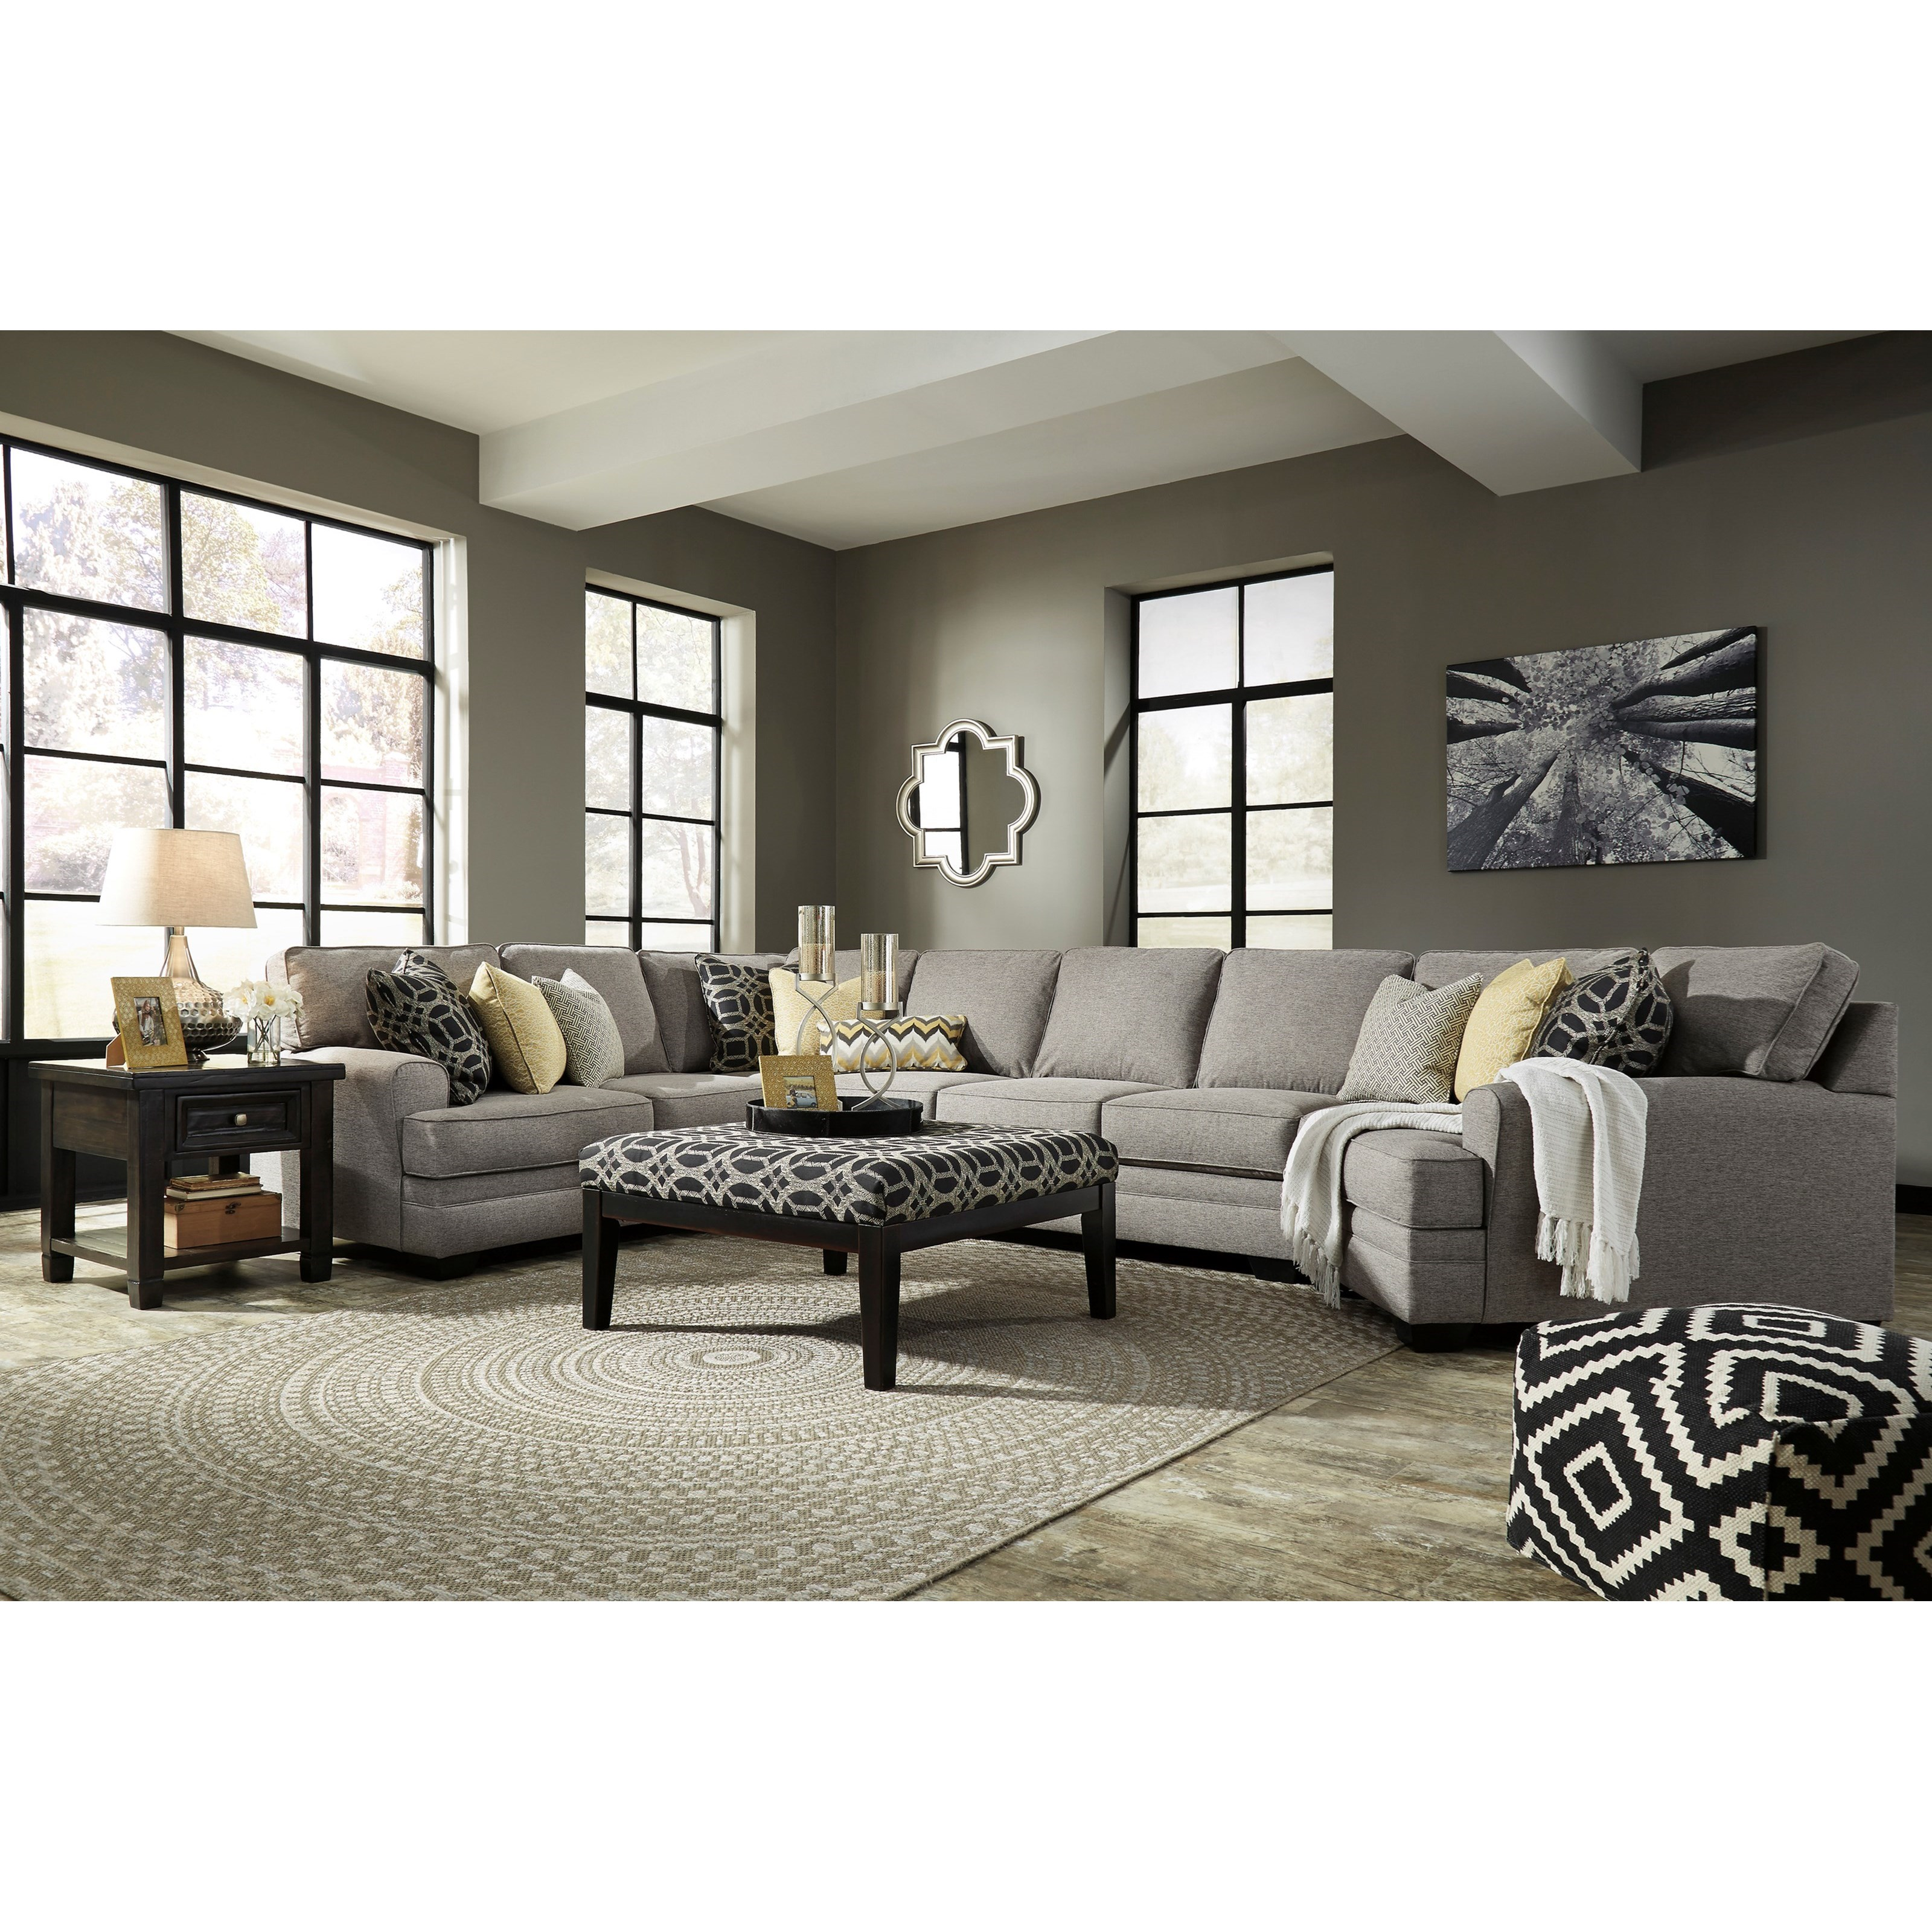 Benchcraft Cresson Stationary Living Room Group - Item Number: 54907 Living Room Group 23